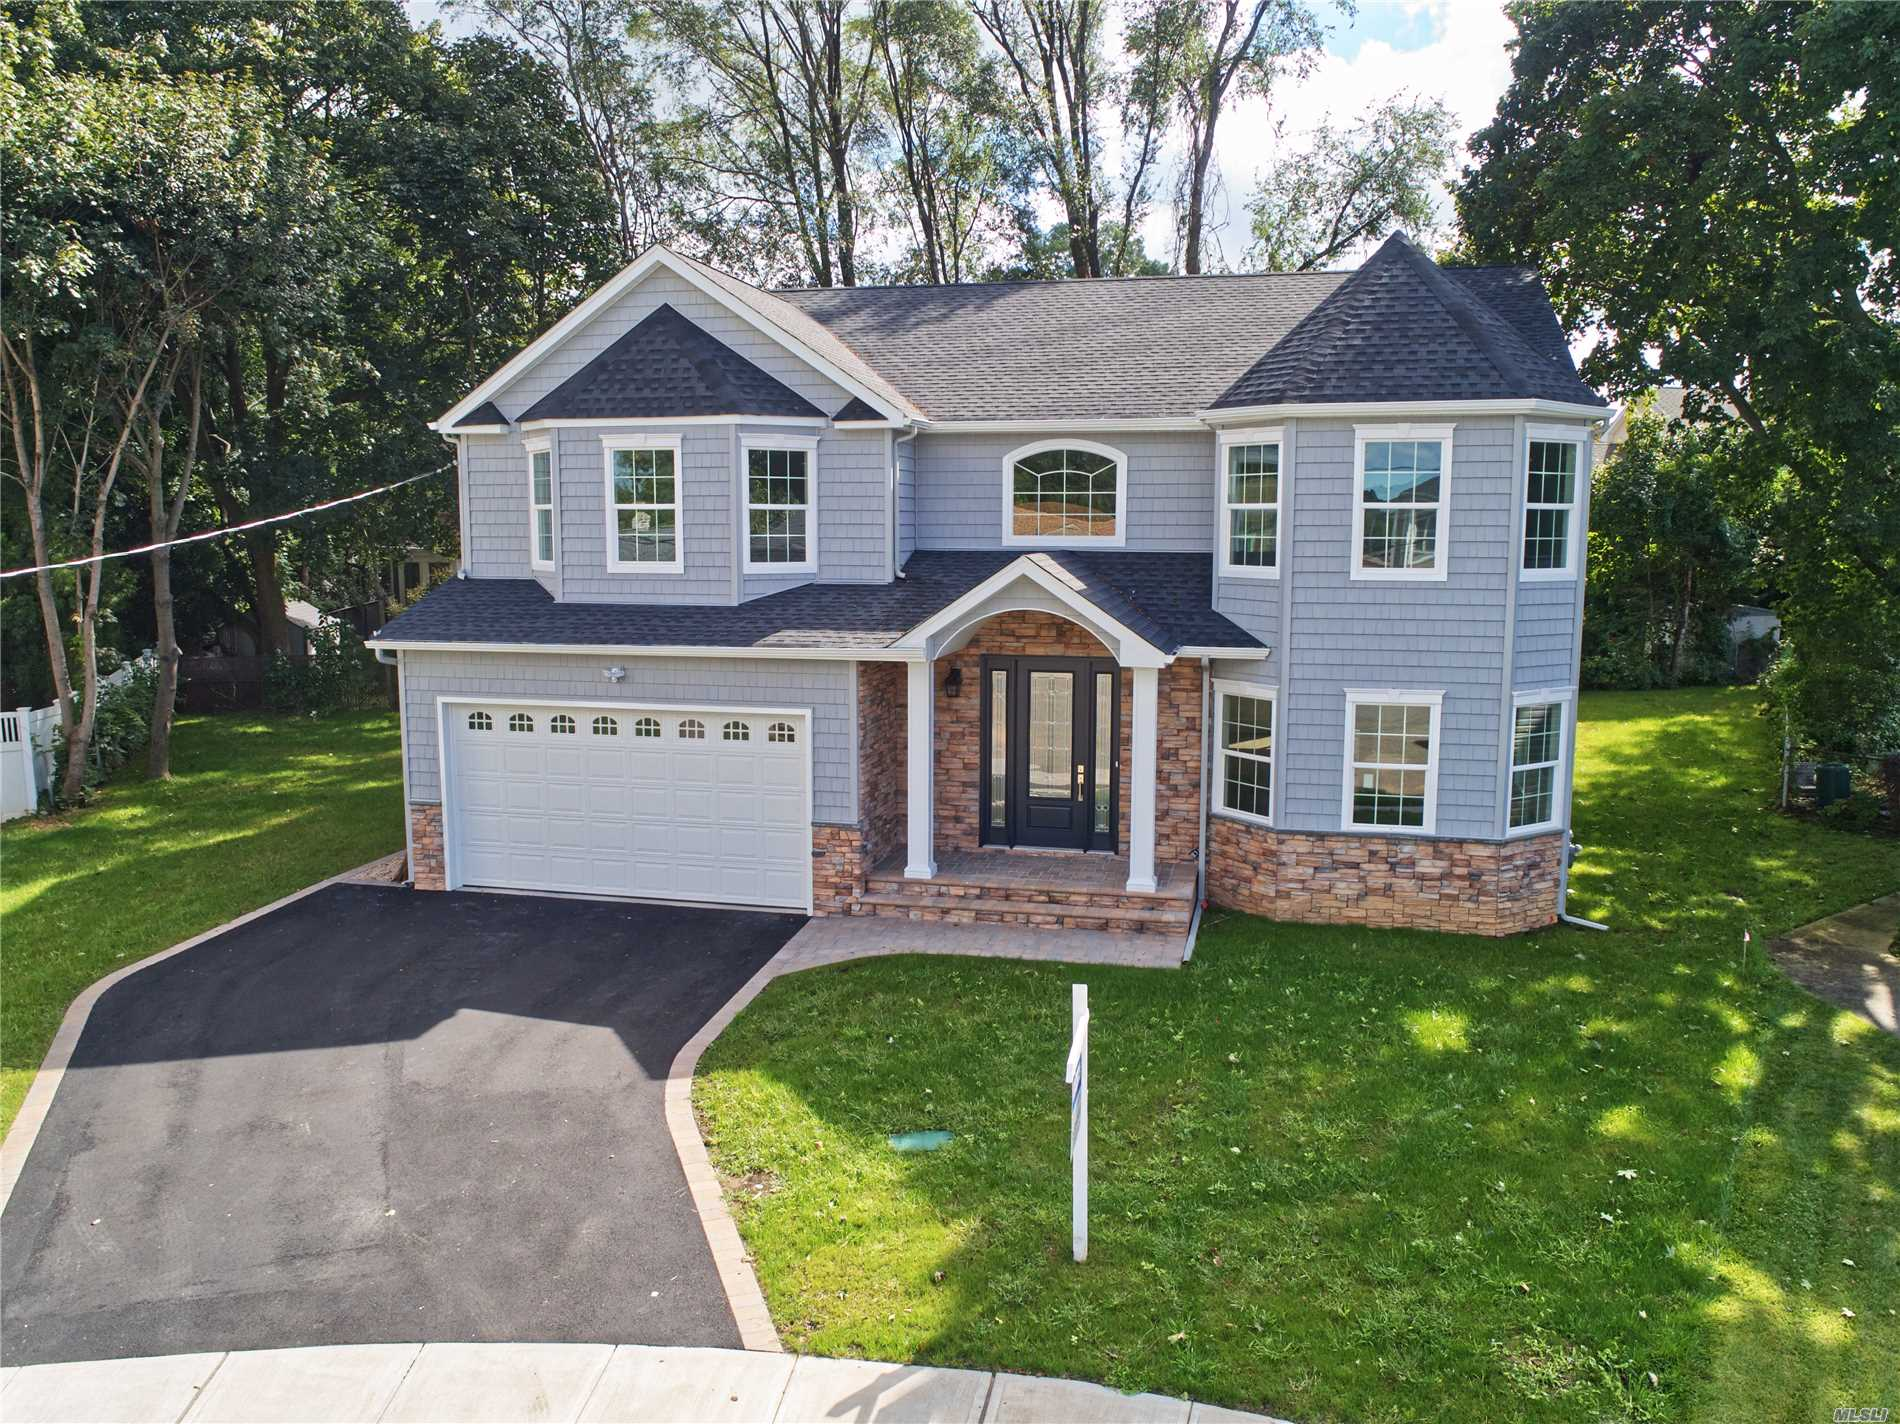 Nestled In The Heart Of North Syosset And Tucked Away In The End Of A Private Cul-De-Sac. This Magnificent New Construction Home Is Conveniently Located A Short Distance From The Lirr. The Is Now Complete And Officially Open To The Public, A Full Photography Package Will Be Uploaded Within The Next Few Days